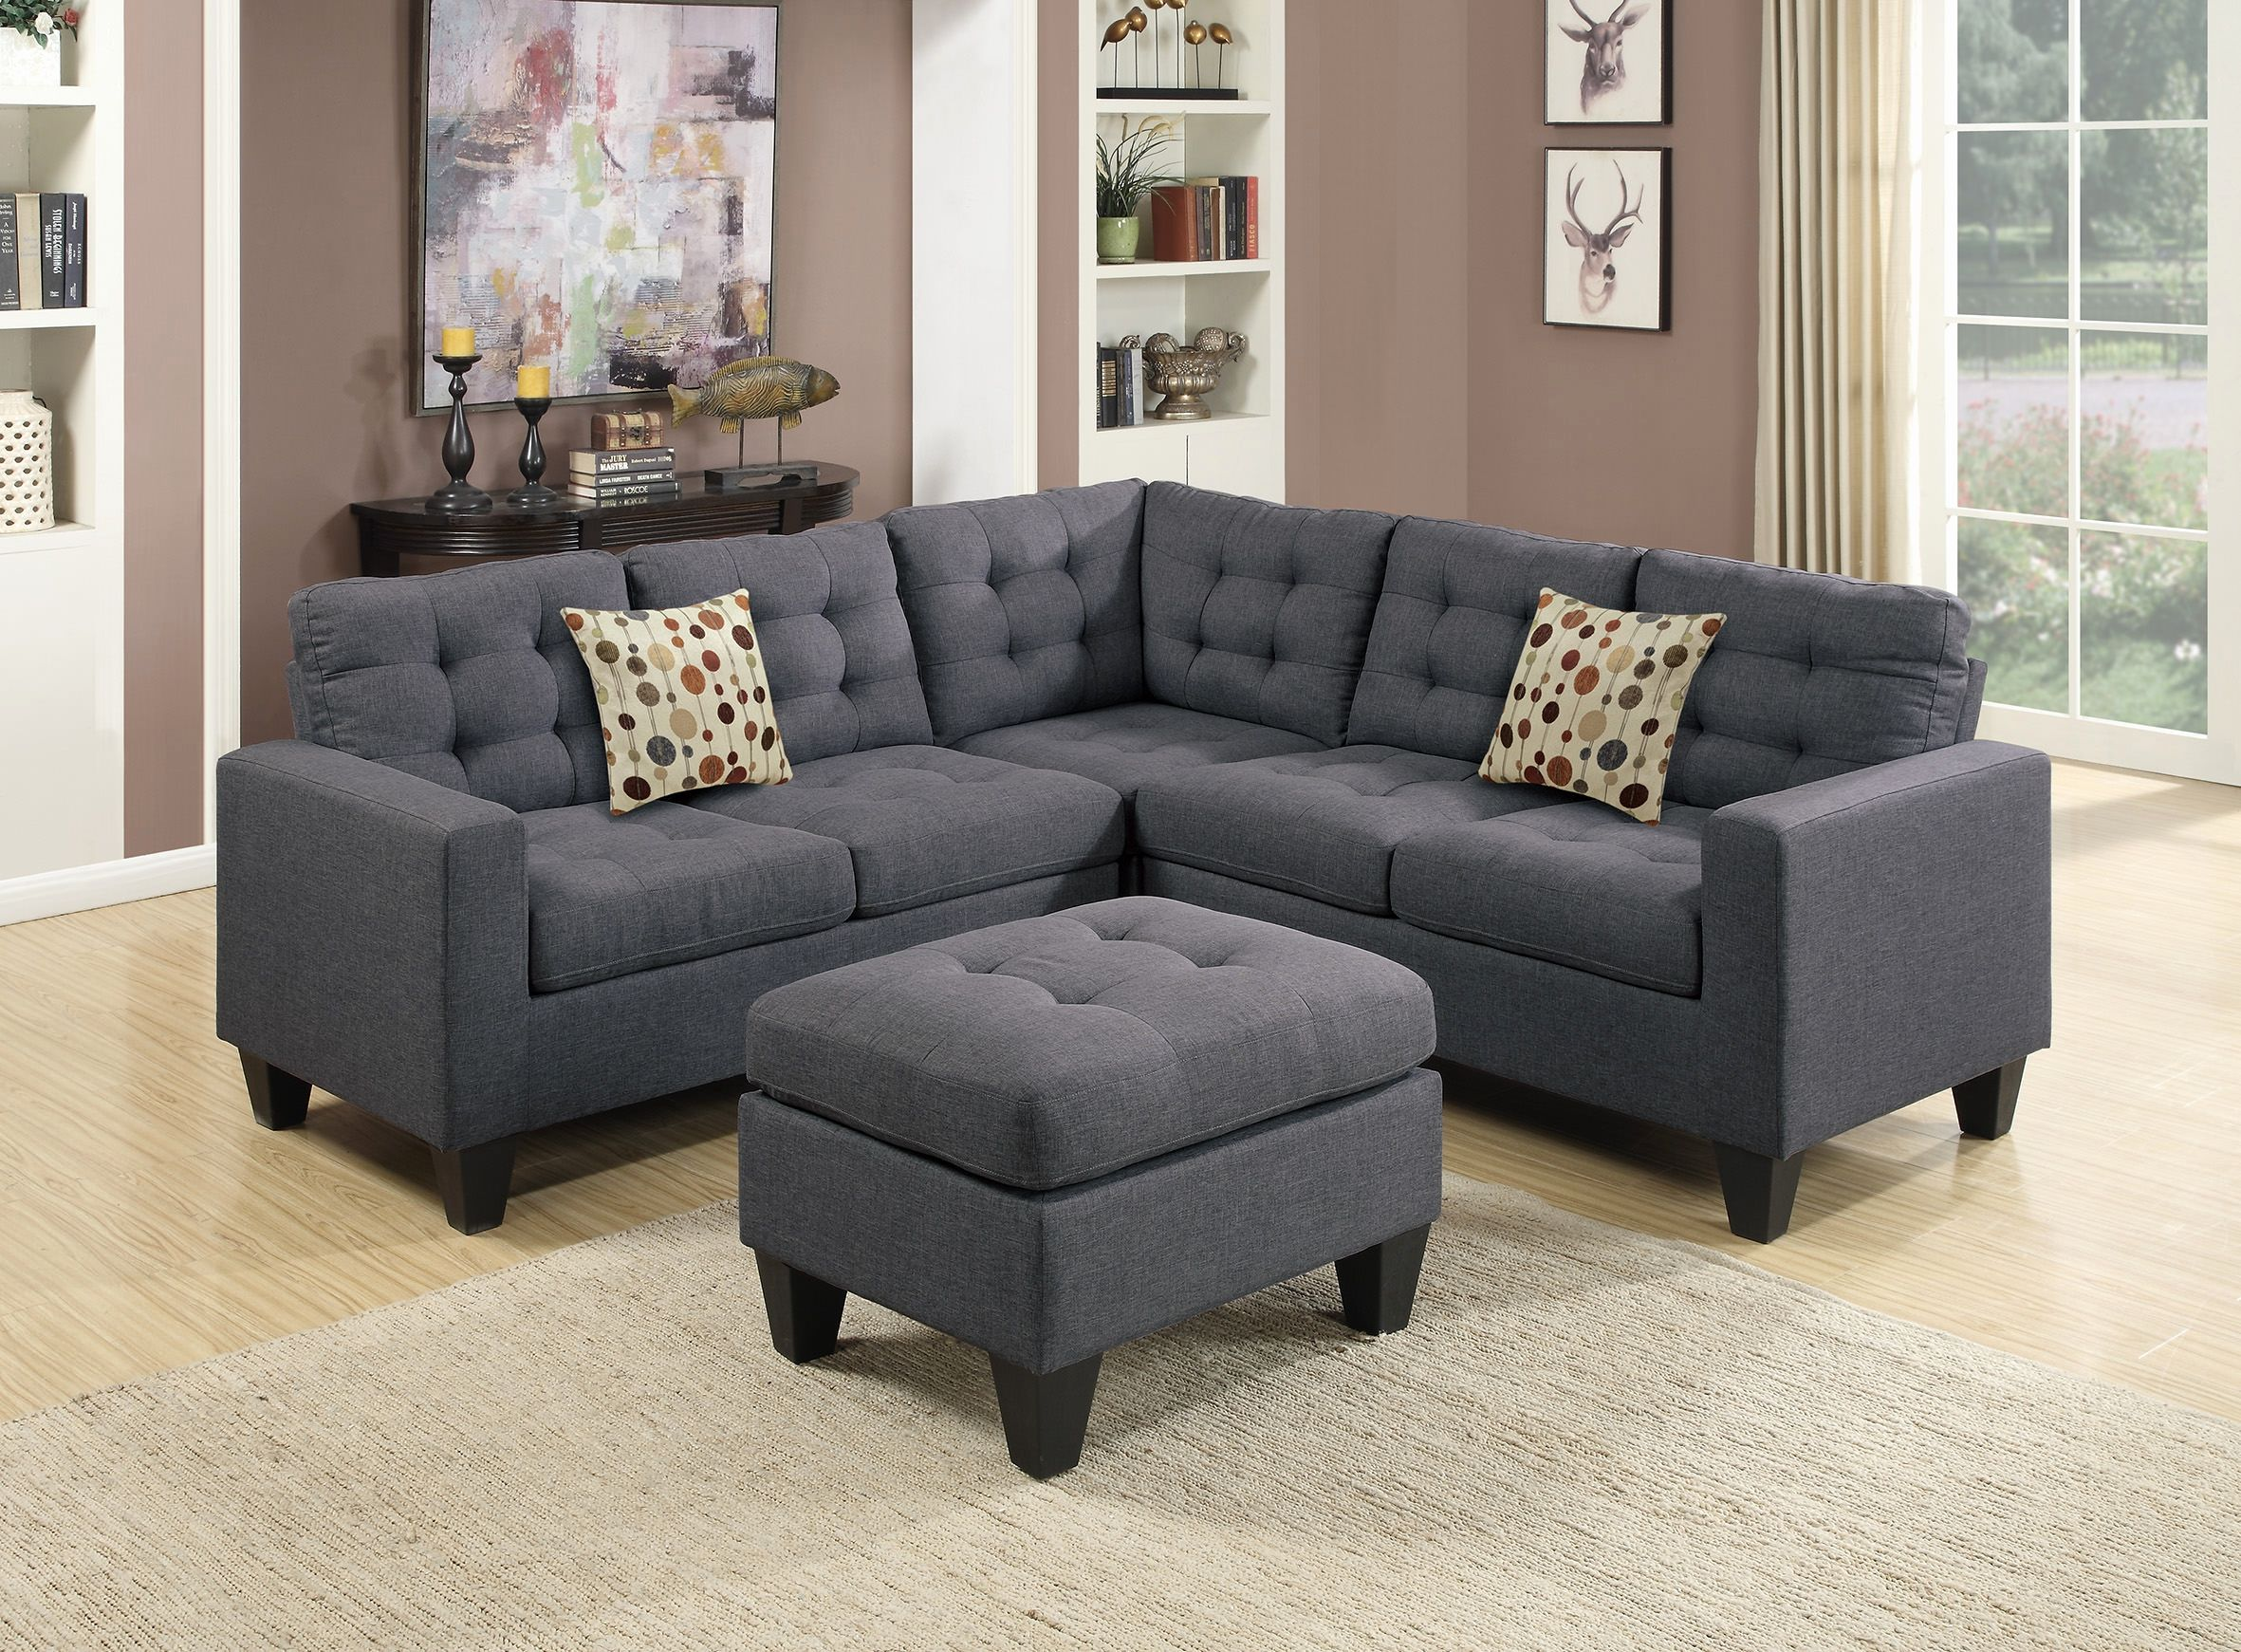 rotmans arms customizable sofas boston b item loft and feet charles lsg collections couch custom ma upholstery london stationary worcester turned with sofa of bassett couches